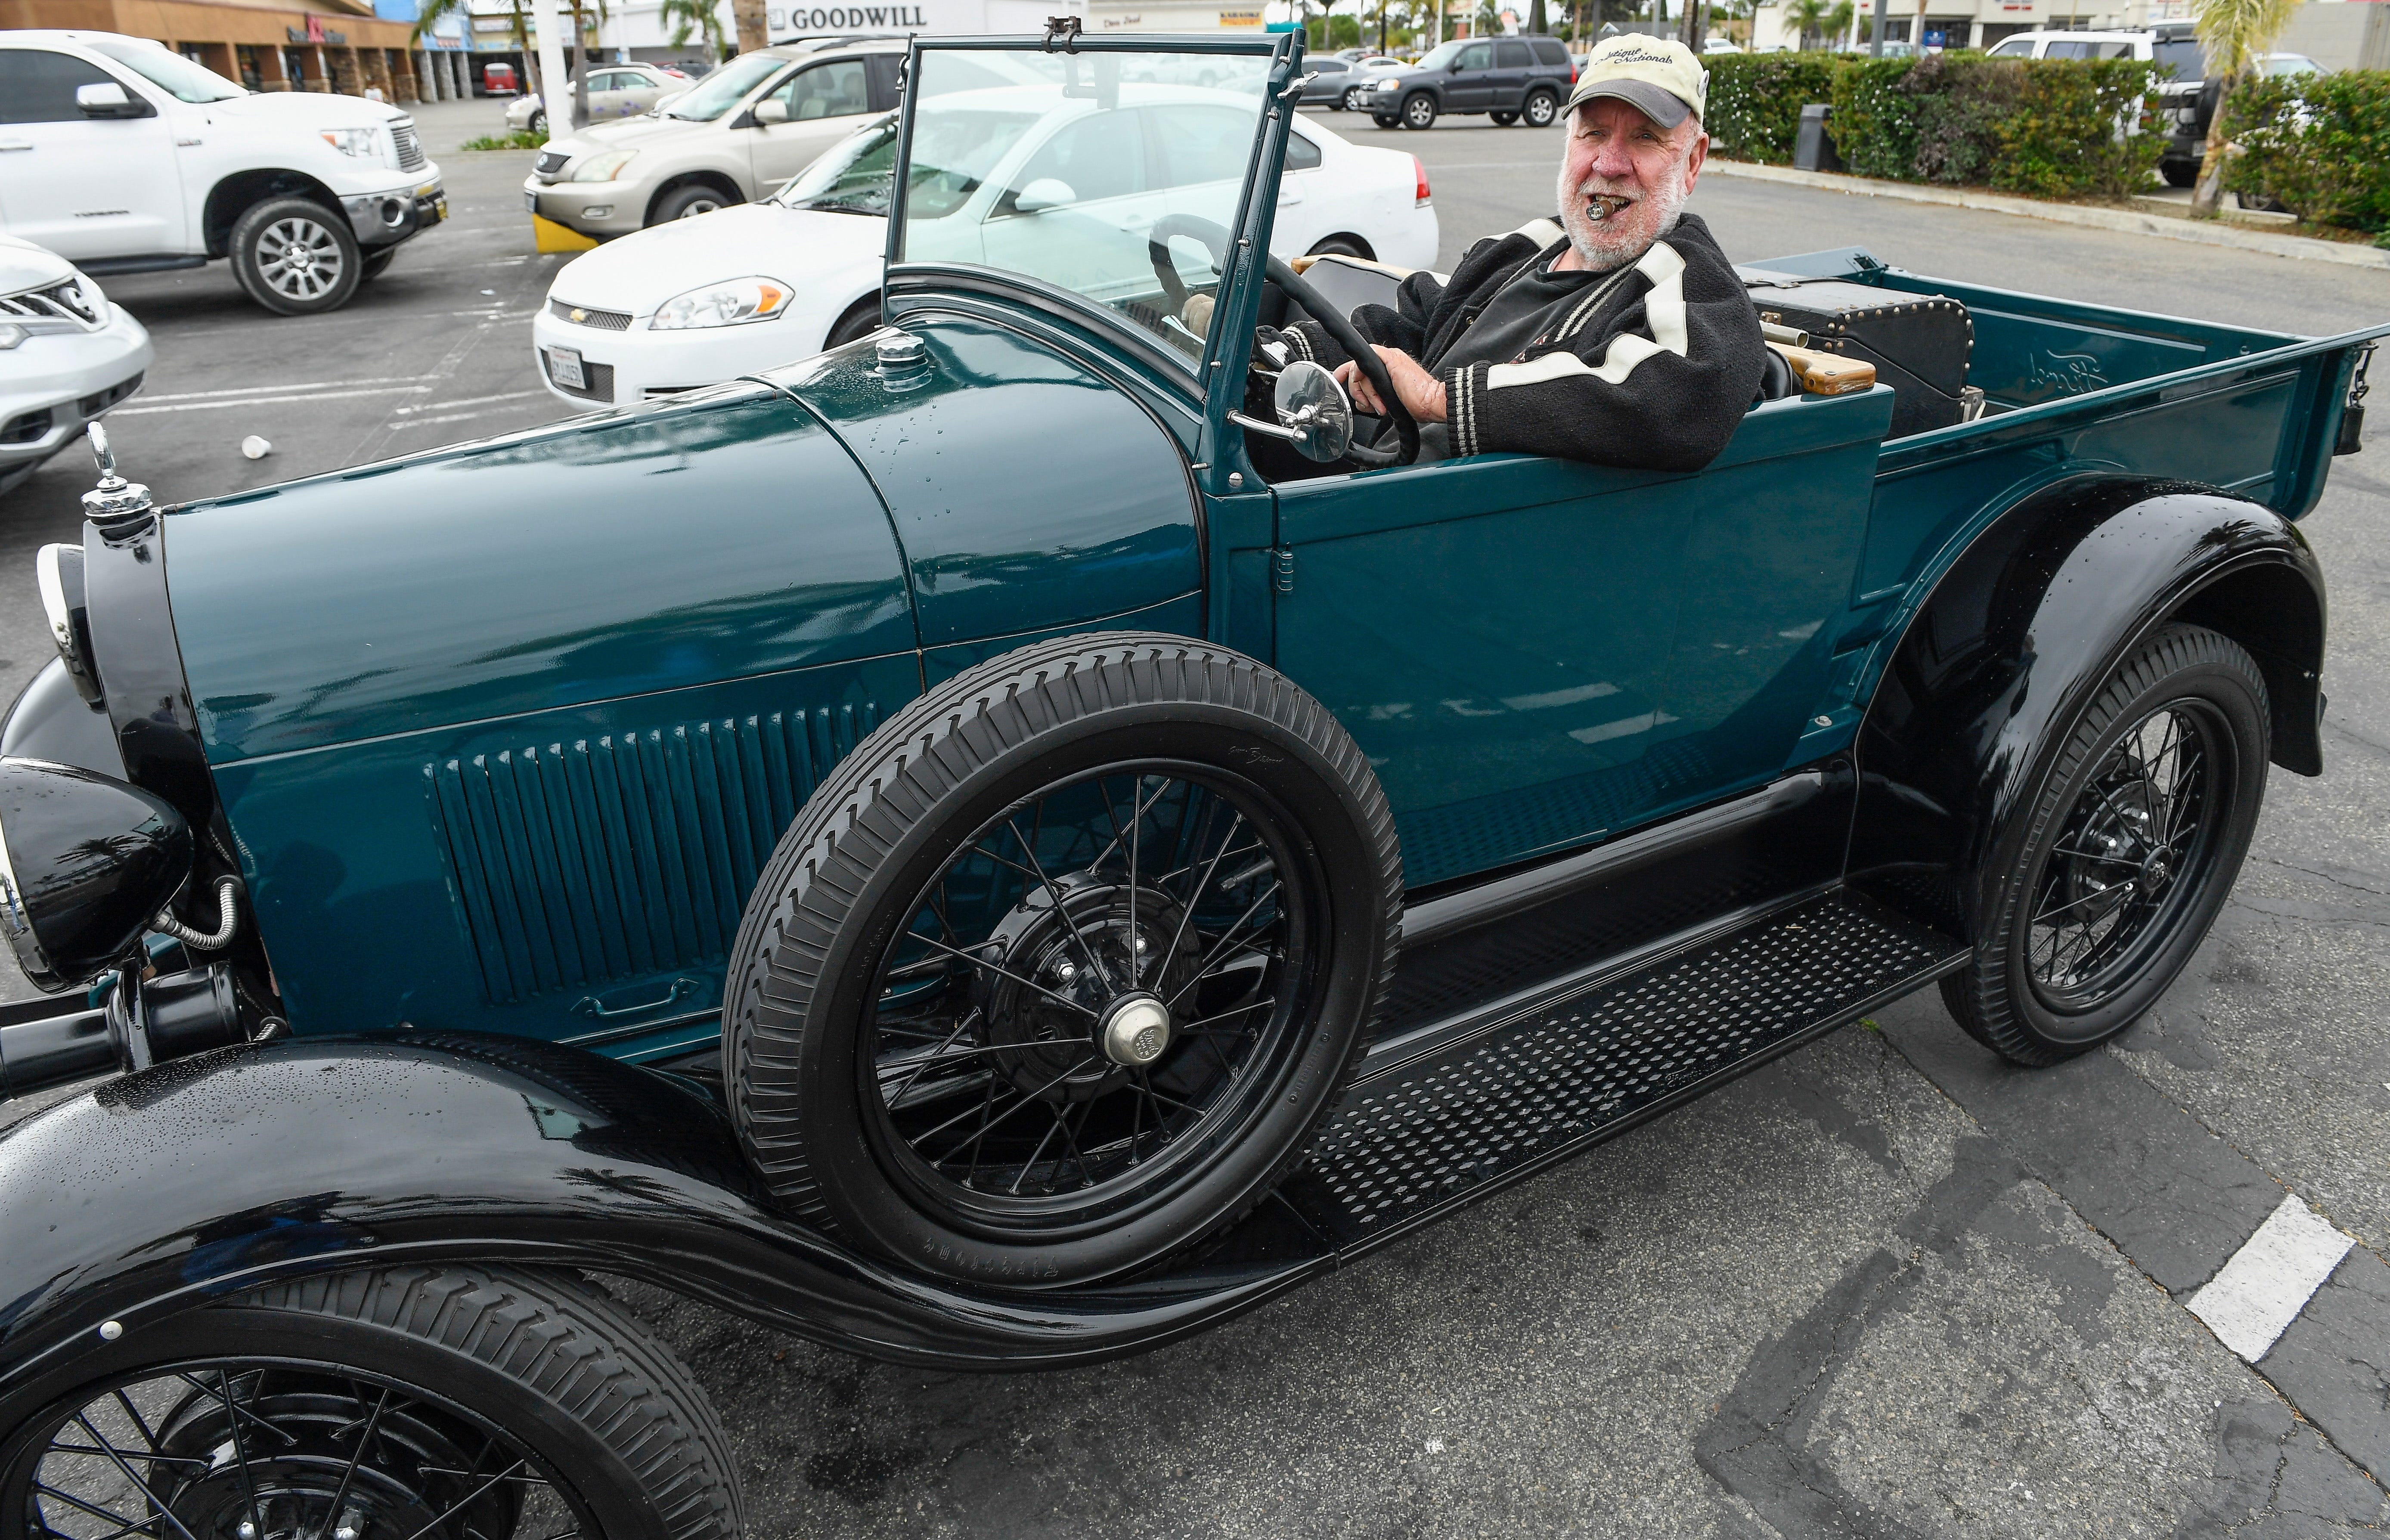 & Just Cool Cars: This Ford isnu0027t quite a Model A or a T markmcfarlin.com